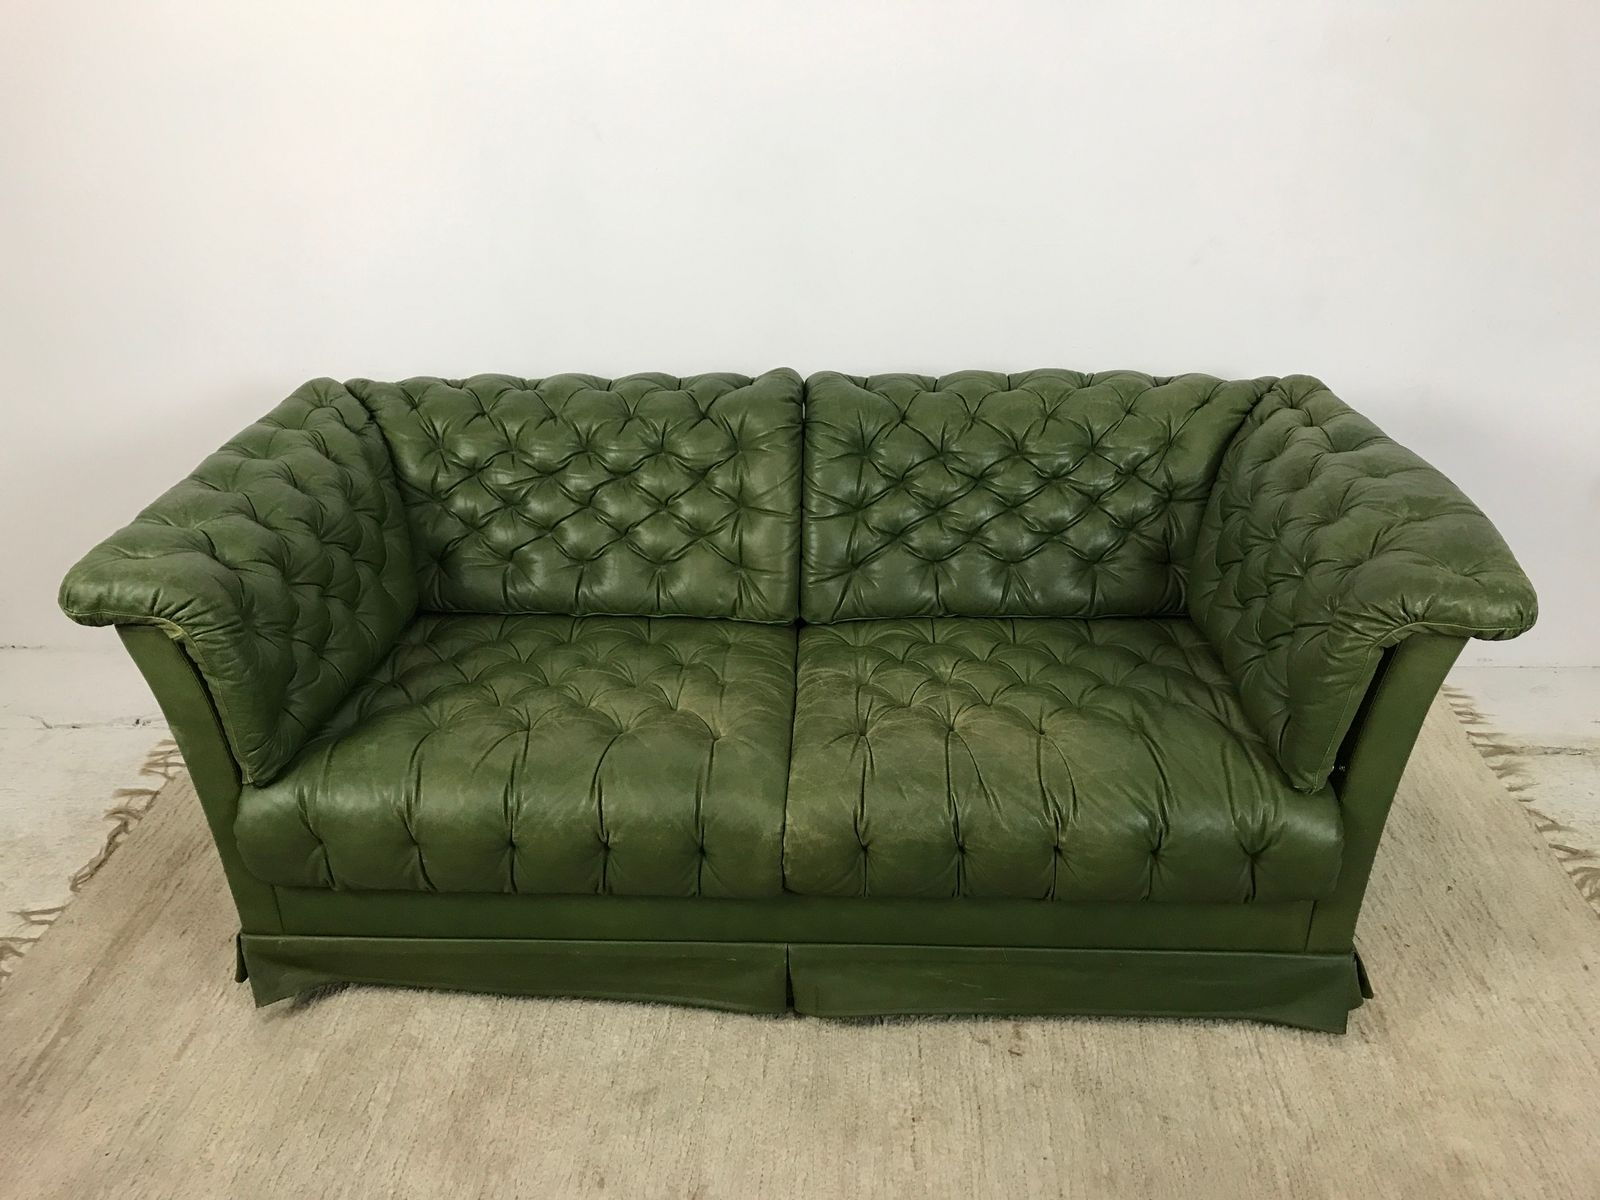 Charming Leather Sofa From Dux, 1960s